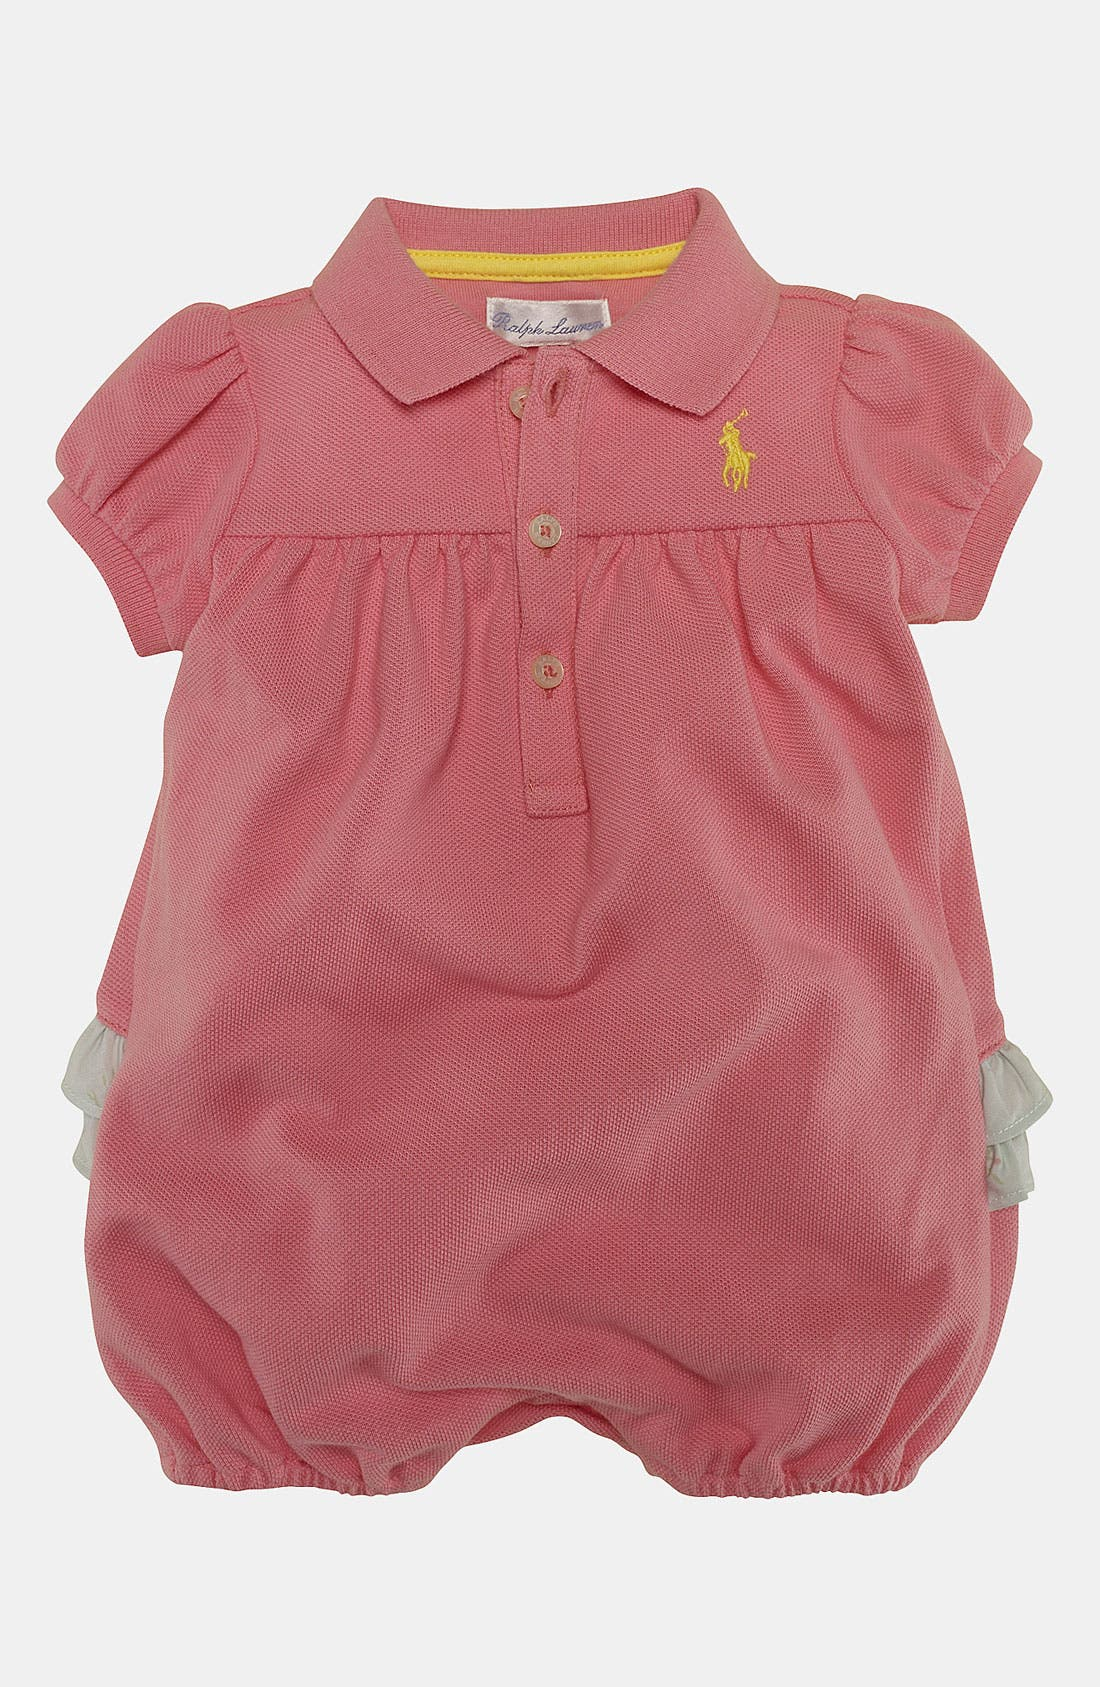 Alternate Image 1 Selected - Ralph Lauren Coveralls (Baby)